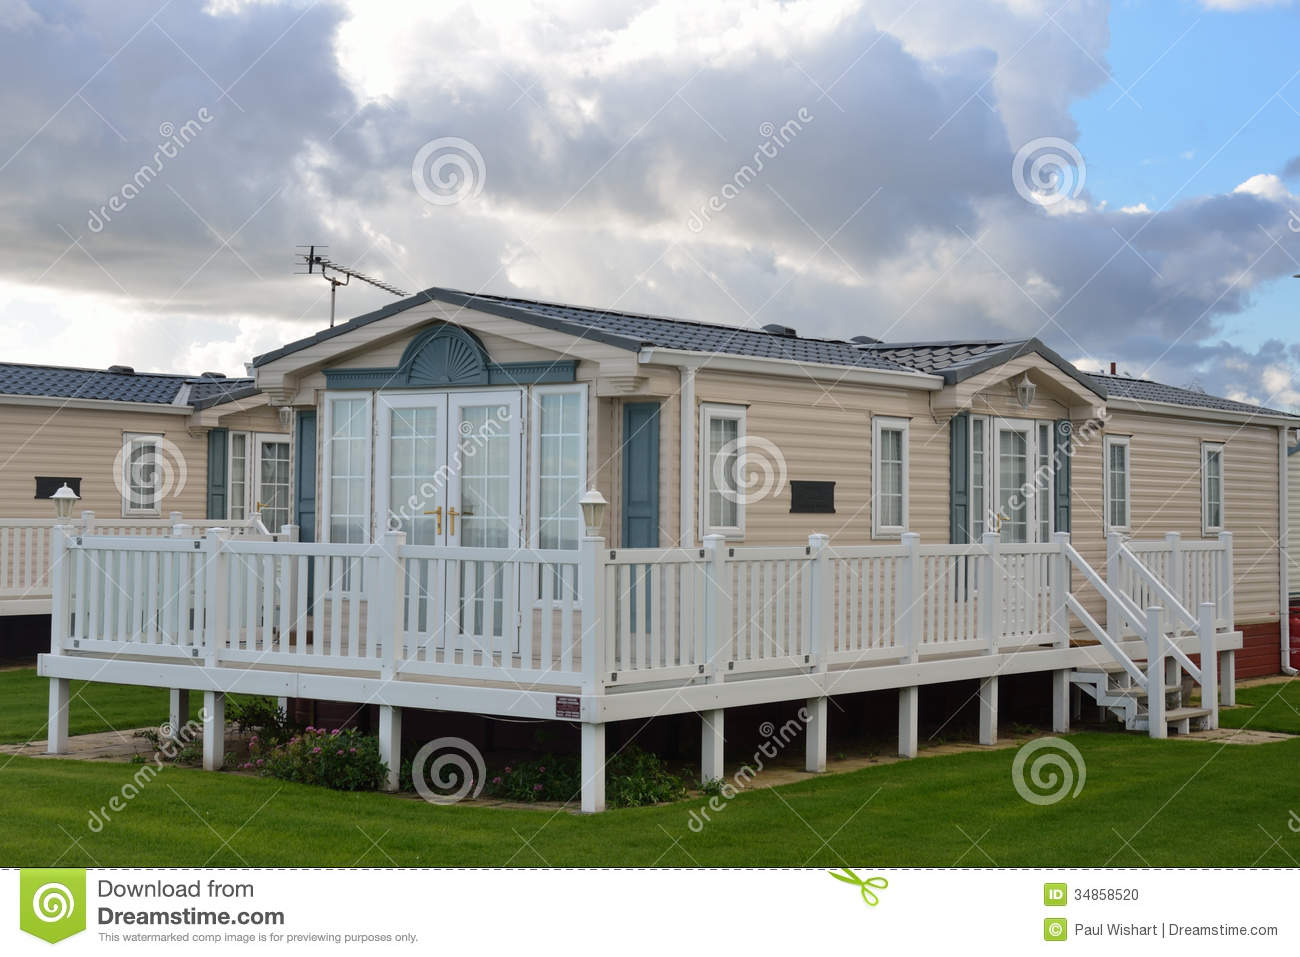 Modern mobile home stock photo image 34858520 for Large modular homes